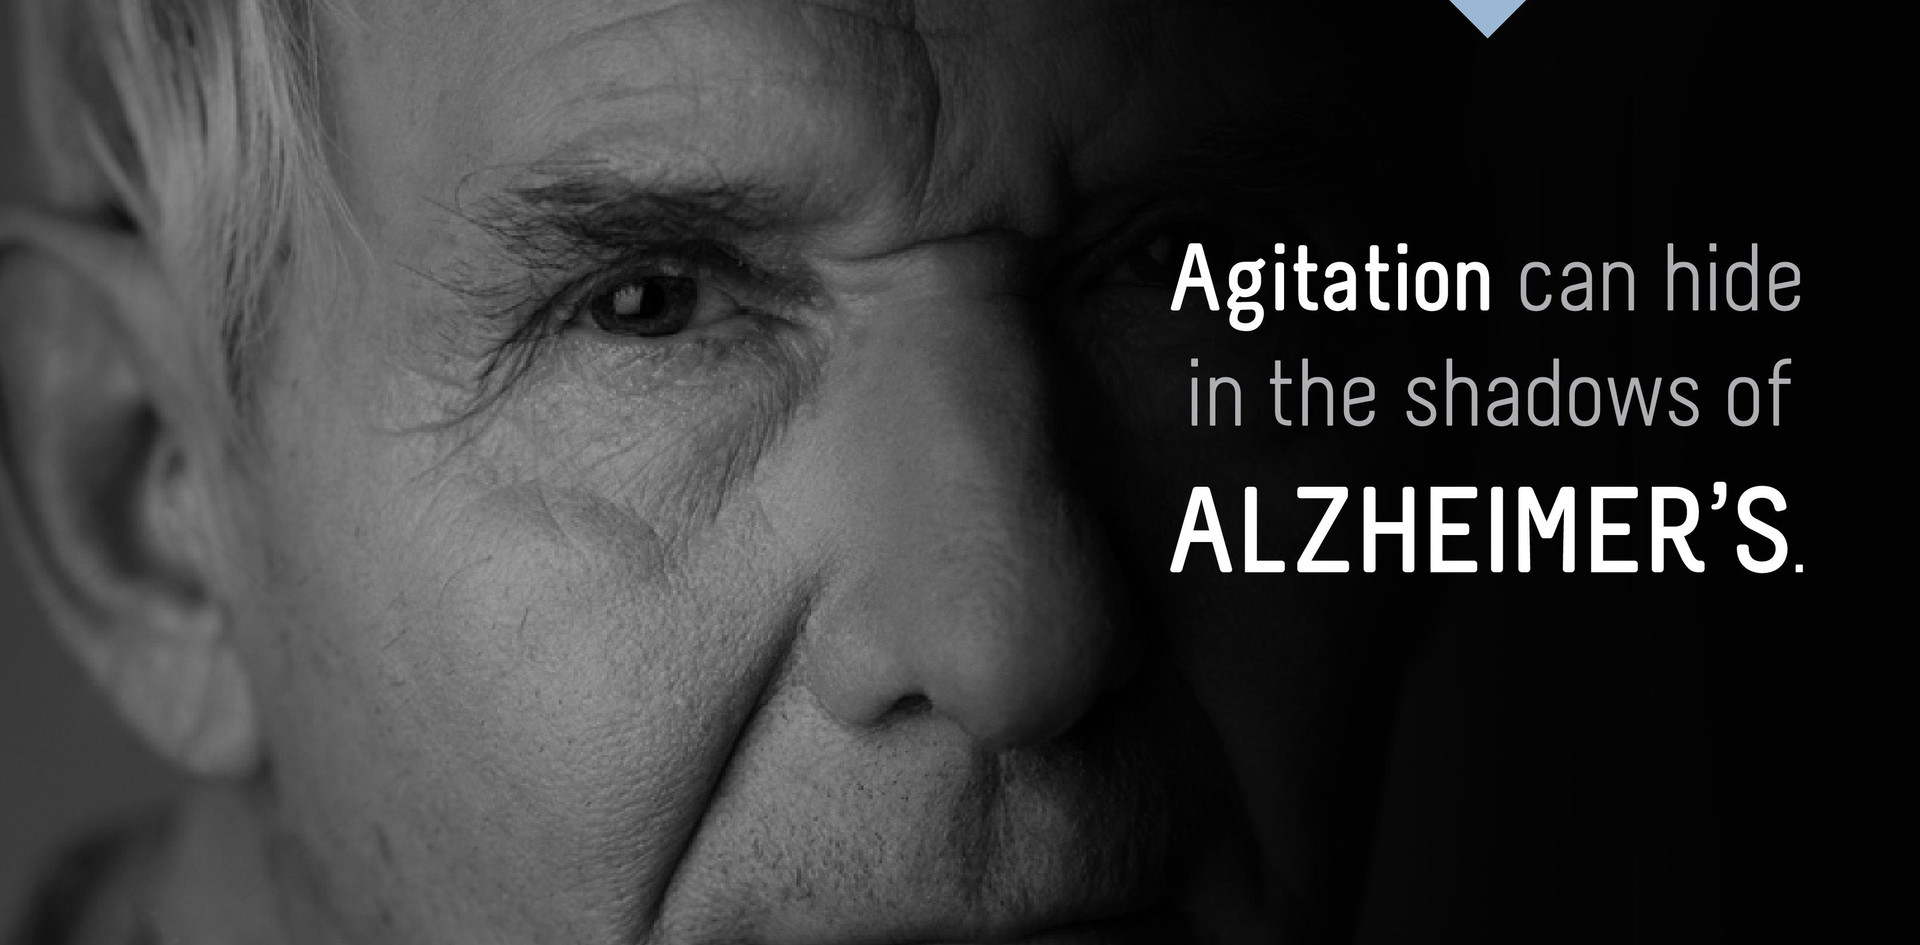 Alzheimer's Disease & Aggitation